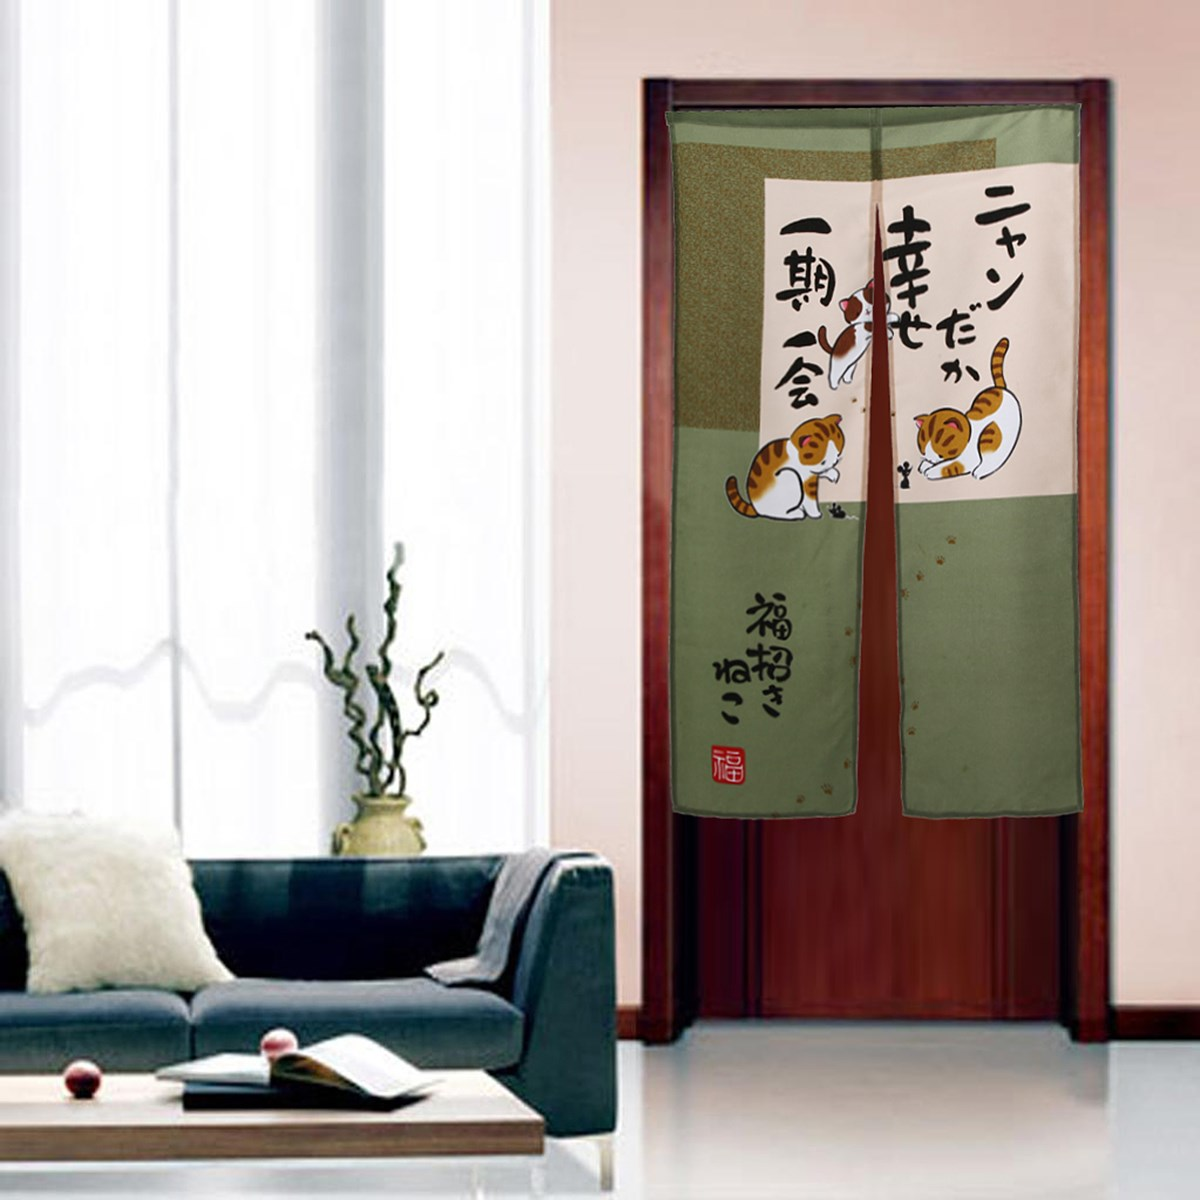 150cm X 85cm Hotel Bathroom Kitchen Decor Japanese Doorway Curtain Playing  Fun Kitten Cloth Polyester Fiber